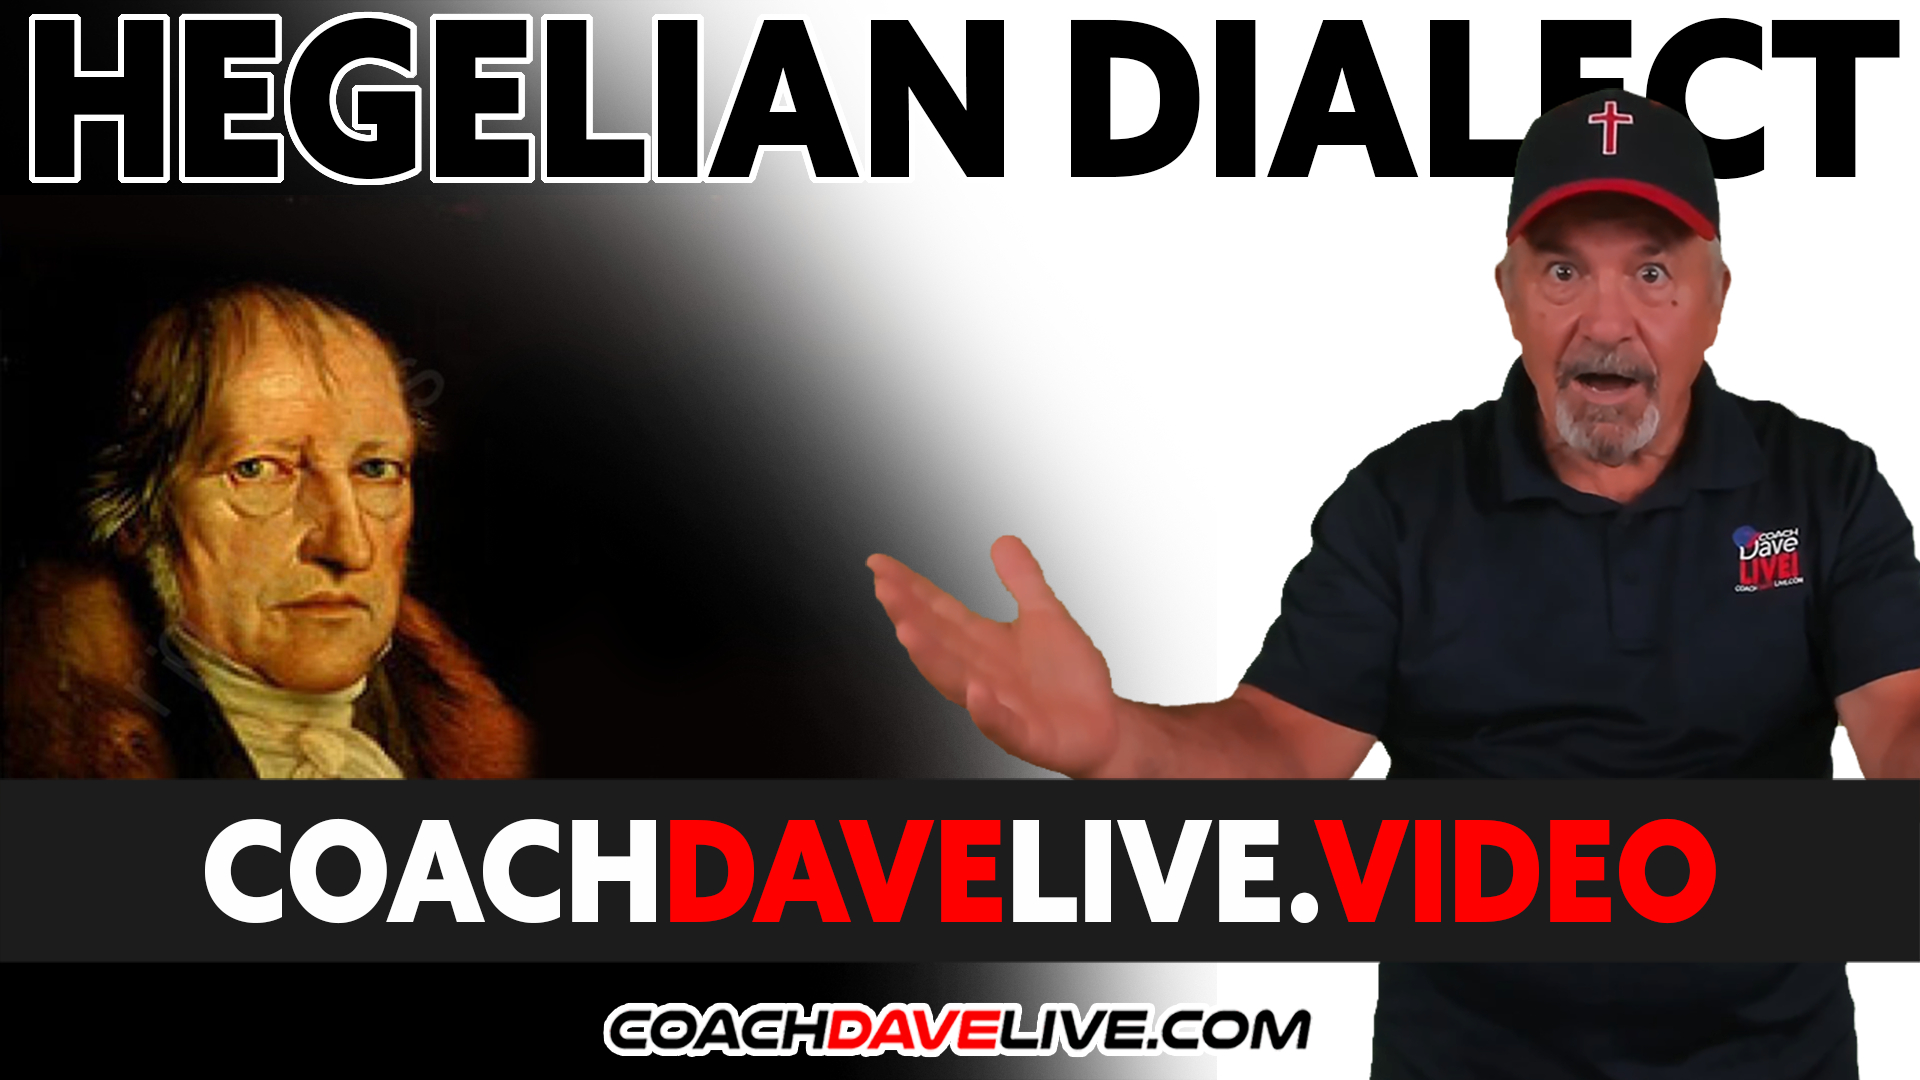 Coach Dave LIVE   9-27-2021   HEGELIAN DIALECTIC